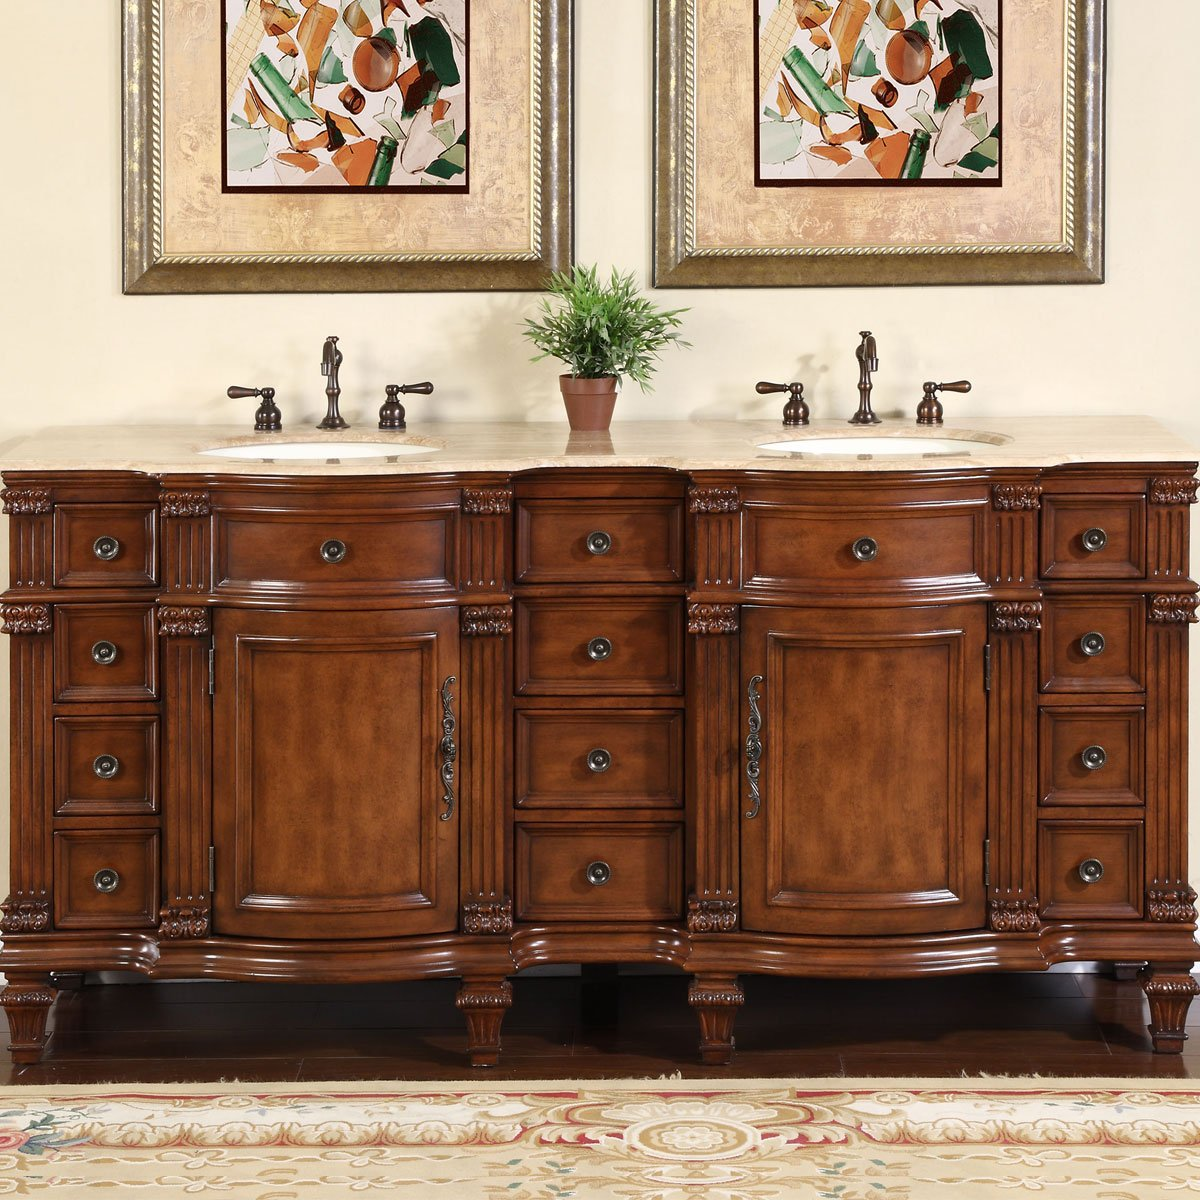 Double Sink Bathroom Furniture on family room furniture, double sink granite, bath vanity furniture, vintage bathroom furniture, double sink cabinets, double sink drain parts, double sink plumbing, double sink shelves, double sink kitchen, rustic bathroom furniture, white bathroom furniture, double sink basin, double sink vanity, linen closet bathroom furniture, bathroom storage furniture, double sink baths, double sink lighting,